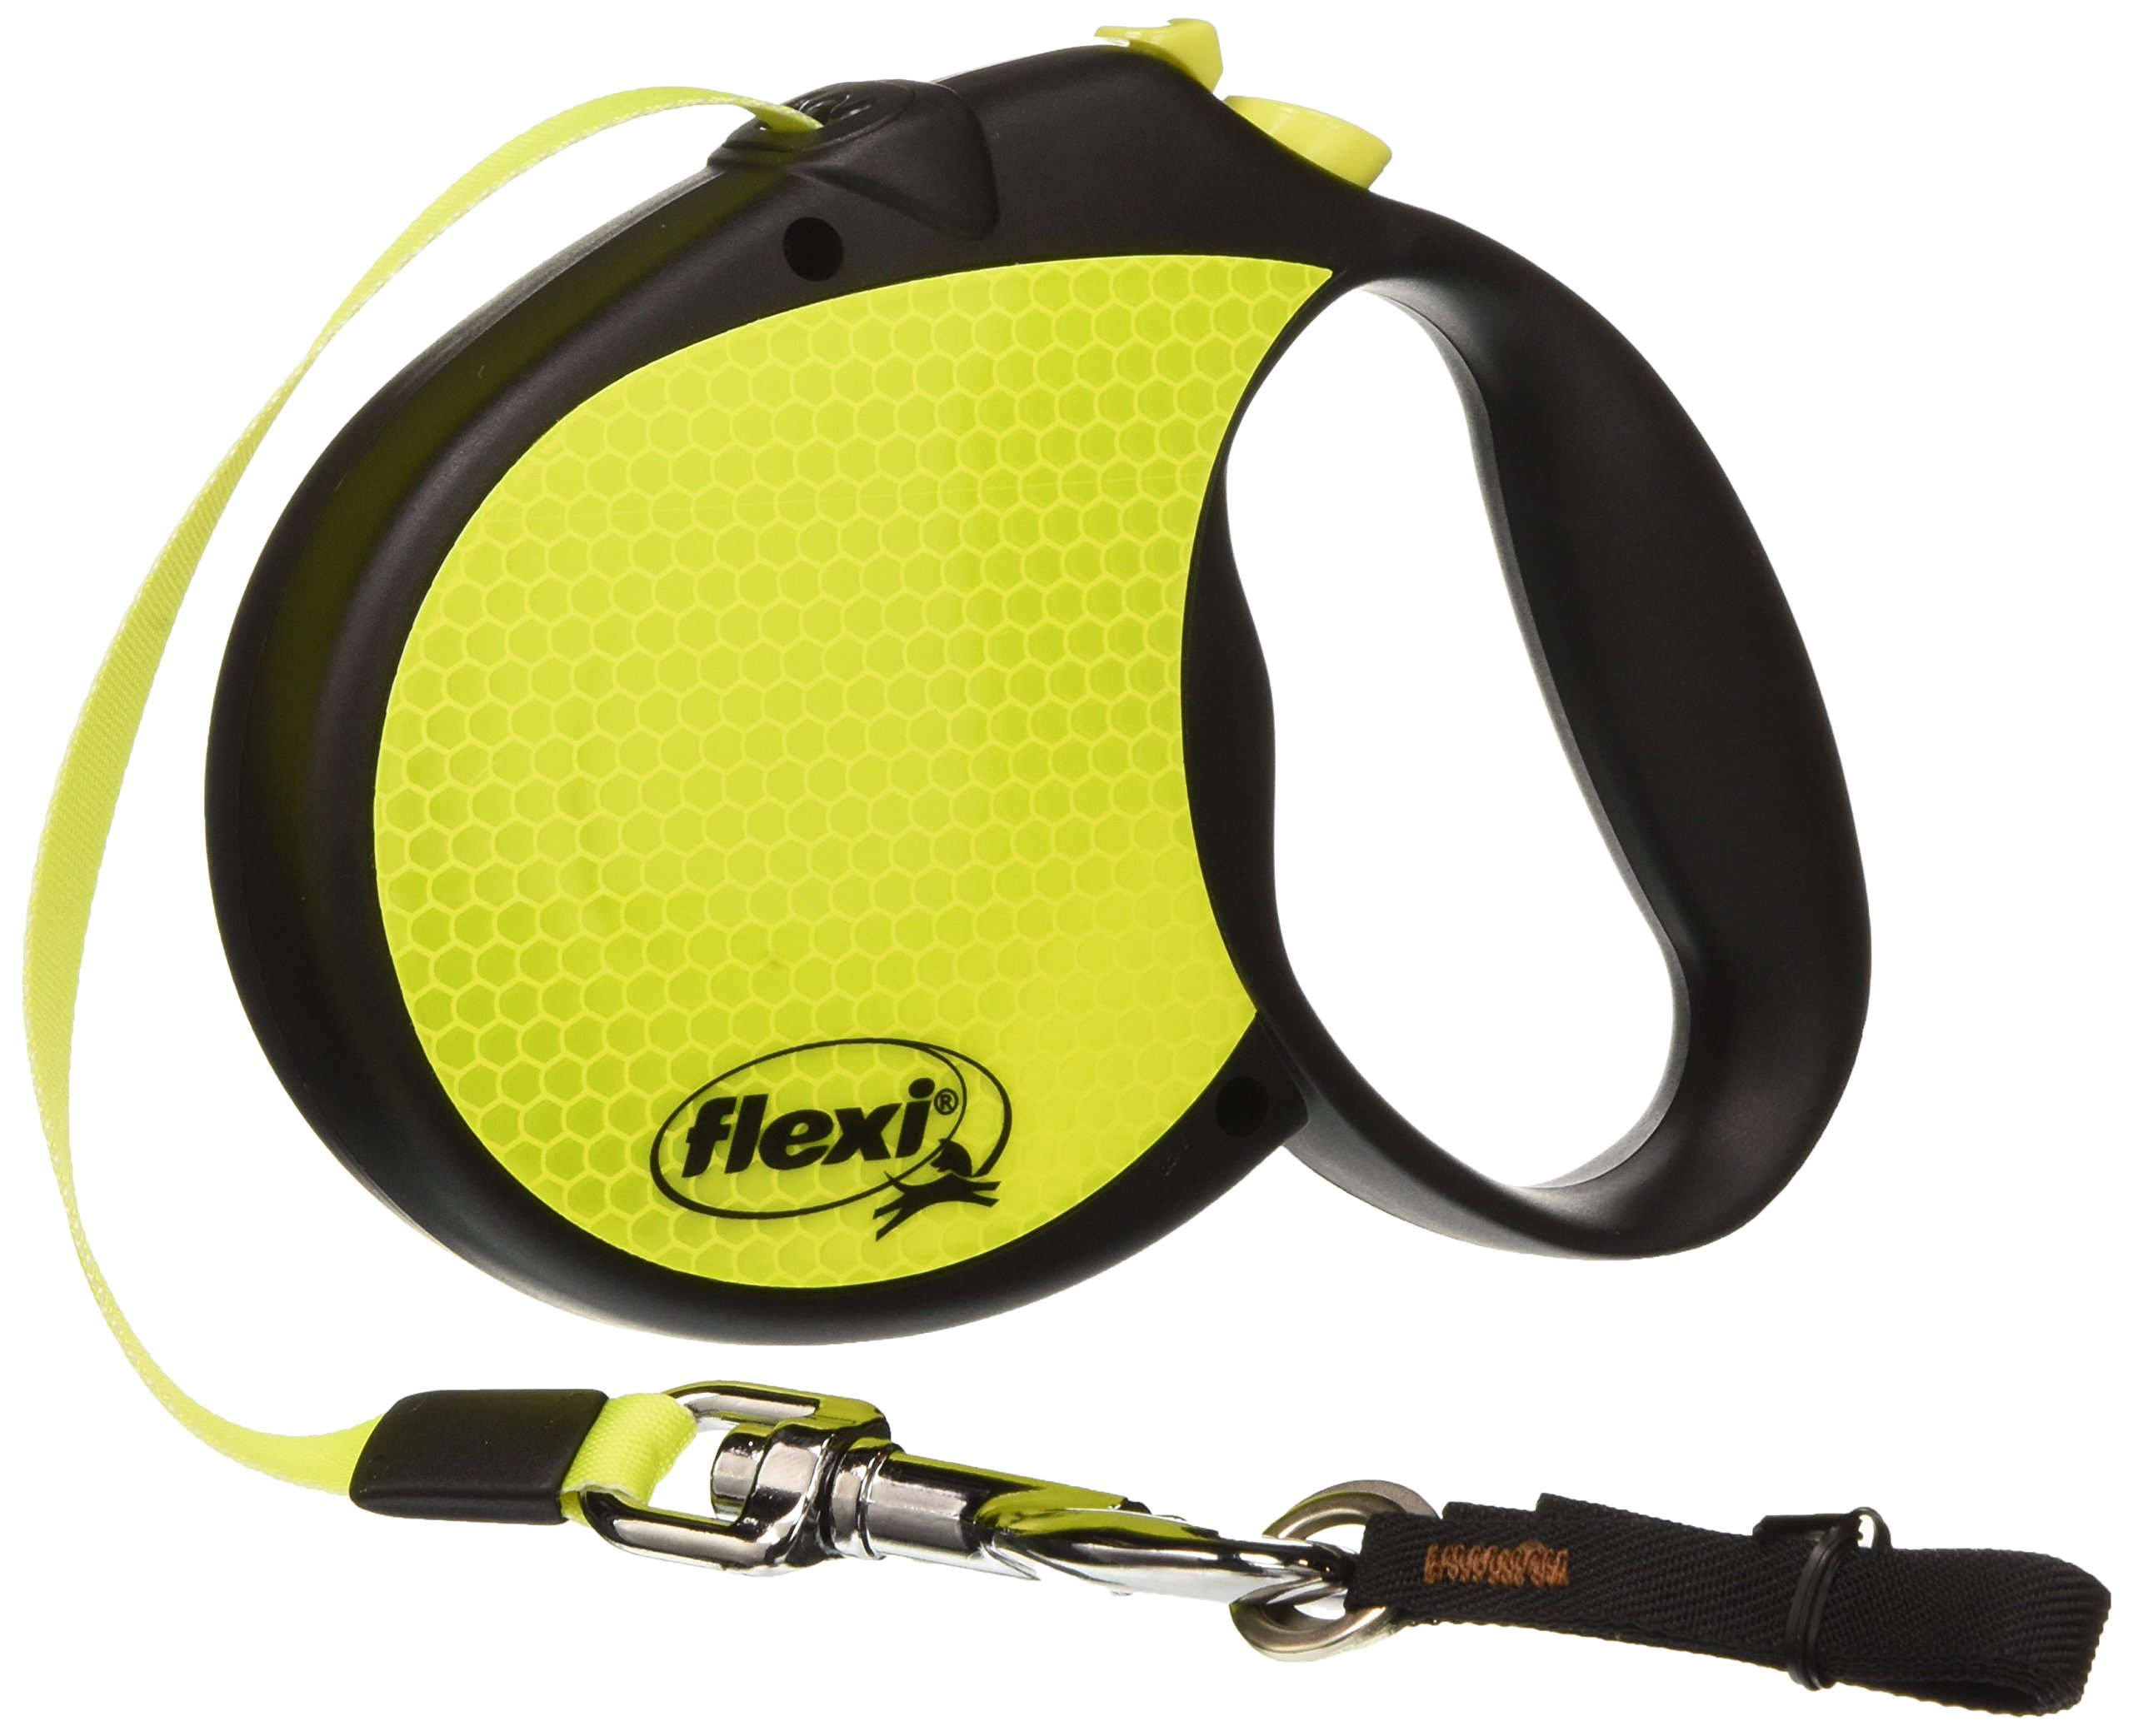 Flexi Neon Retractable Dog Leash (Tape), 16 ft, Large, Black/Neon